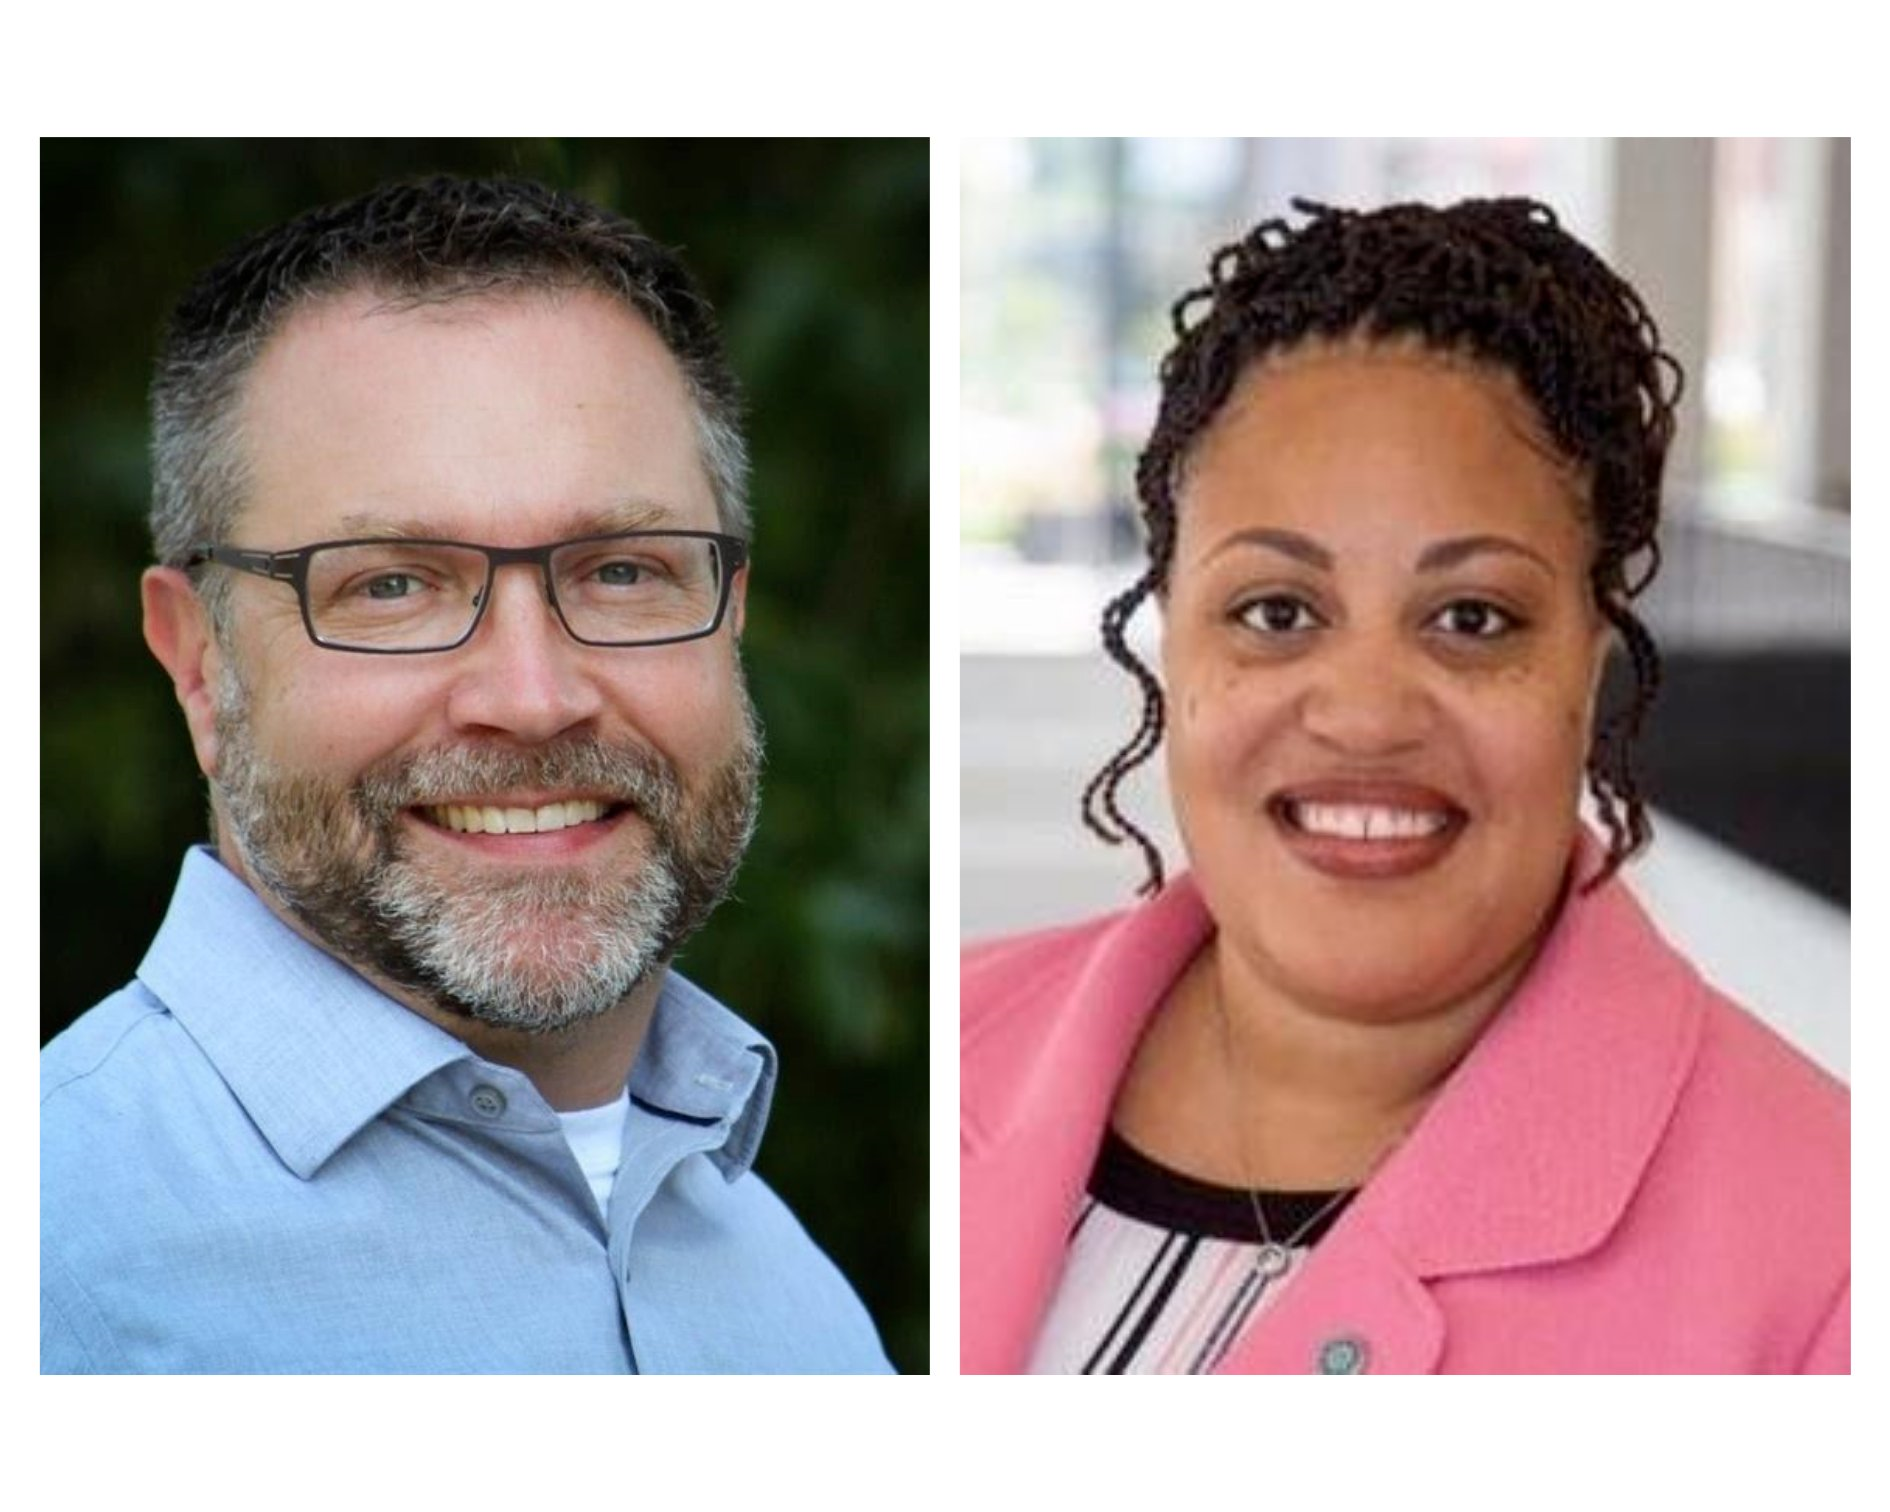 Fall 2020 Power of Diversity Lecture Series: Cleveland, Humanities, Collaboration